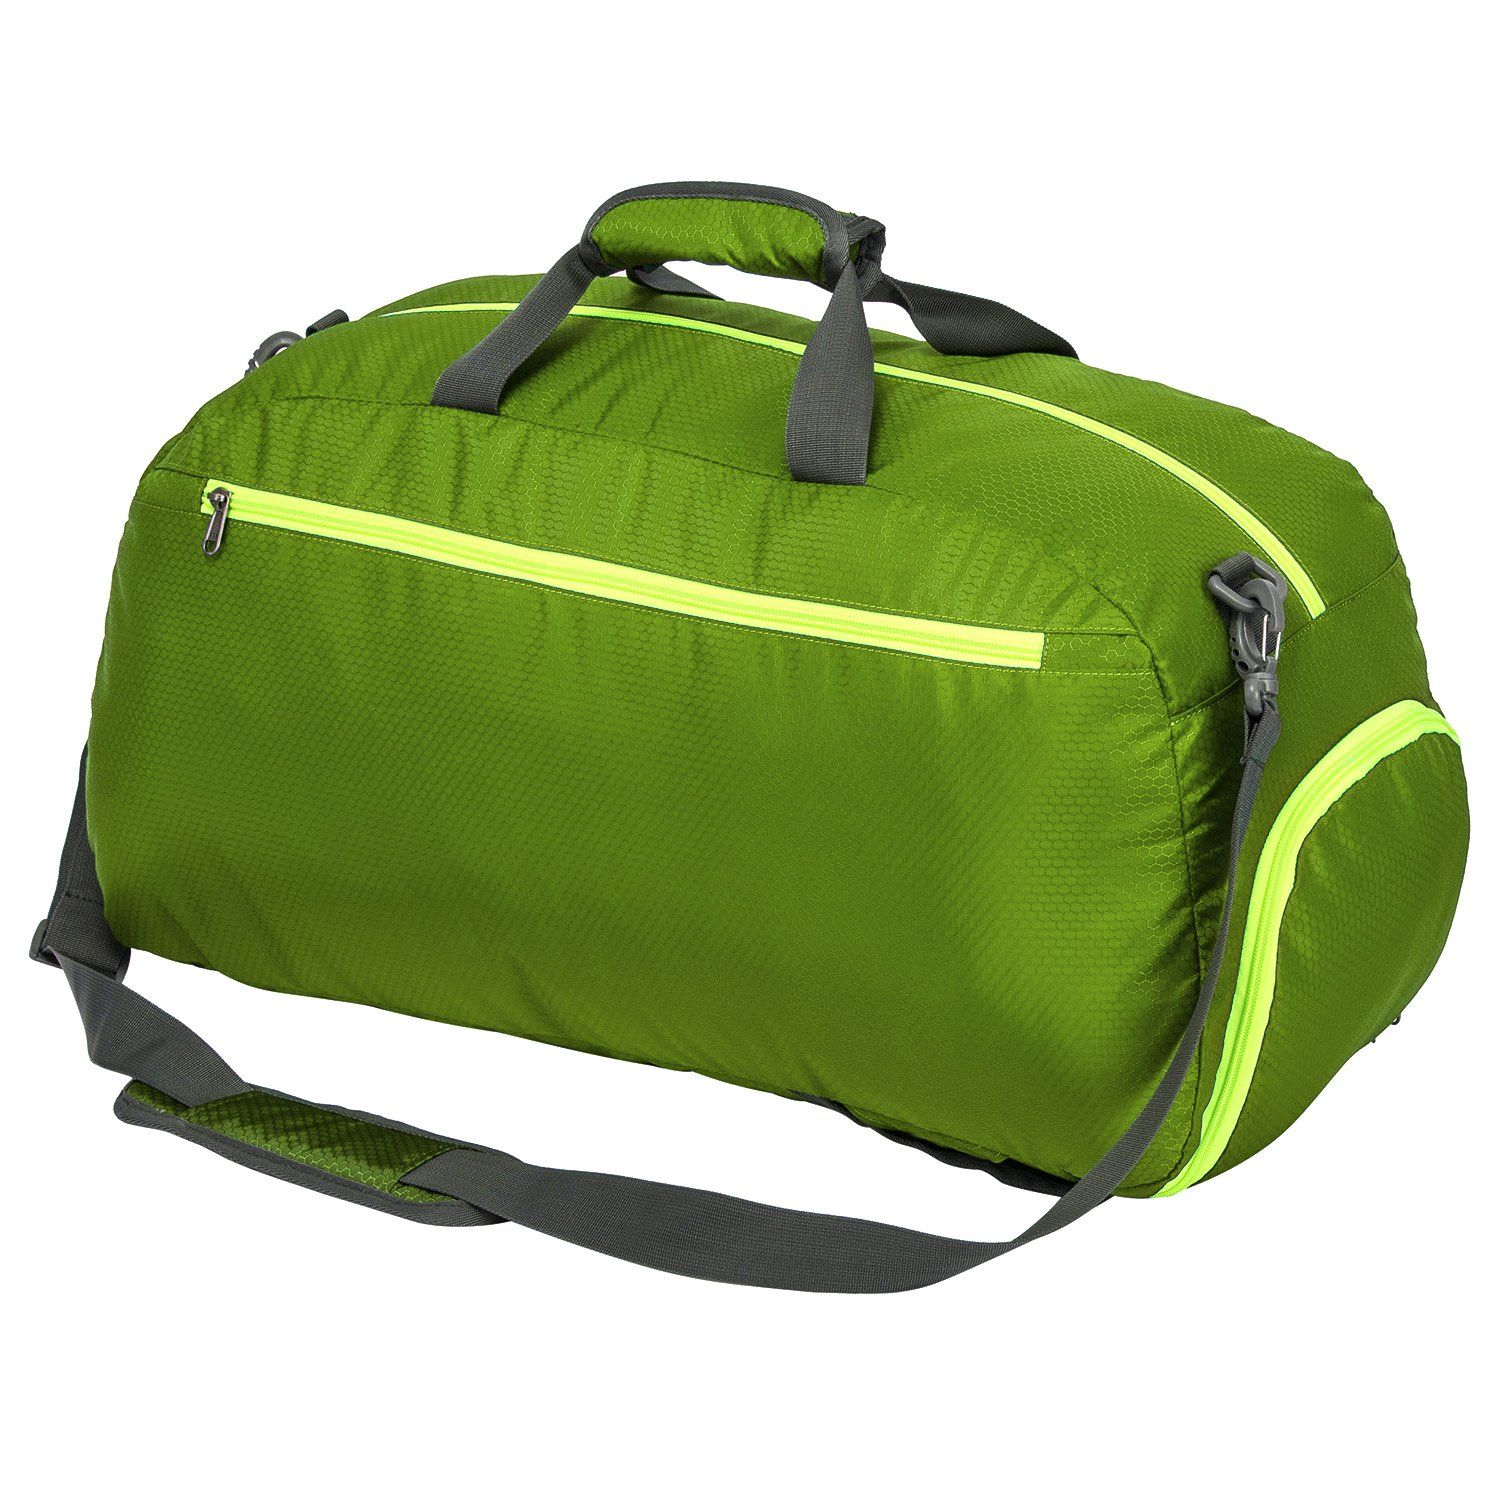 Riavika Travel Duffel Bag Backpack Luggage Gym Sports Bag With Shoe Compartment Green Visit The Image Link Duffel Bag Backpack Sports Bags Gym Travel Duffel